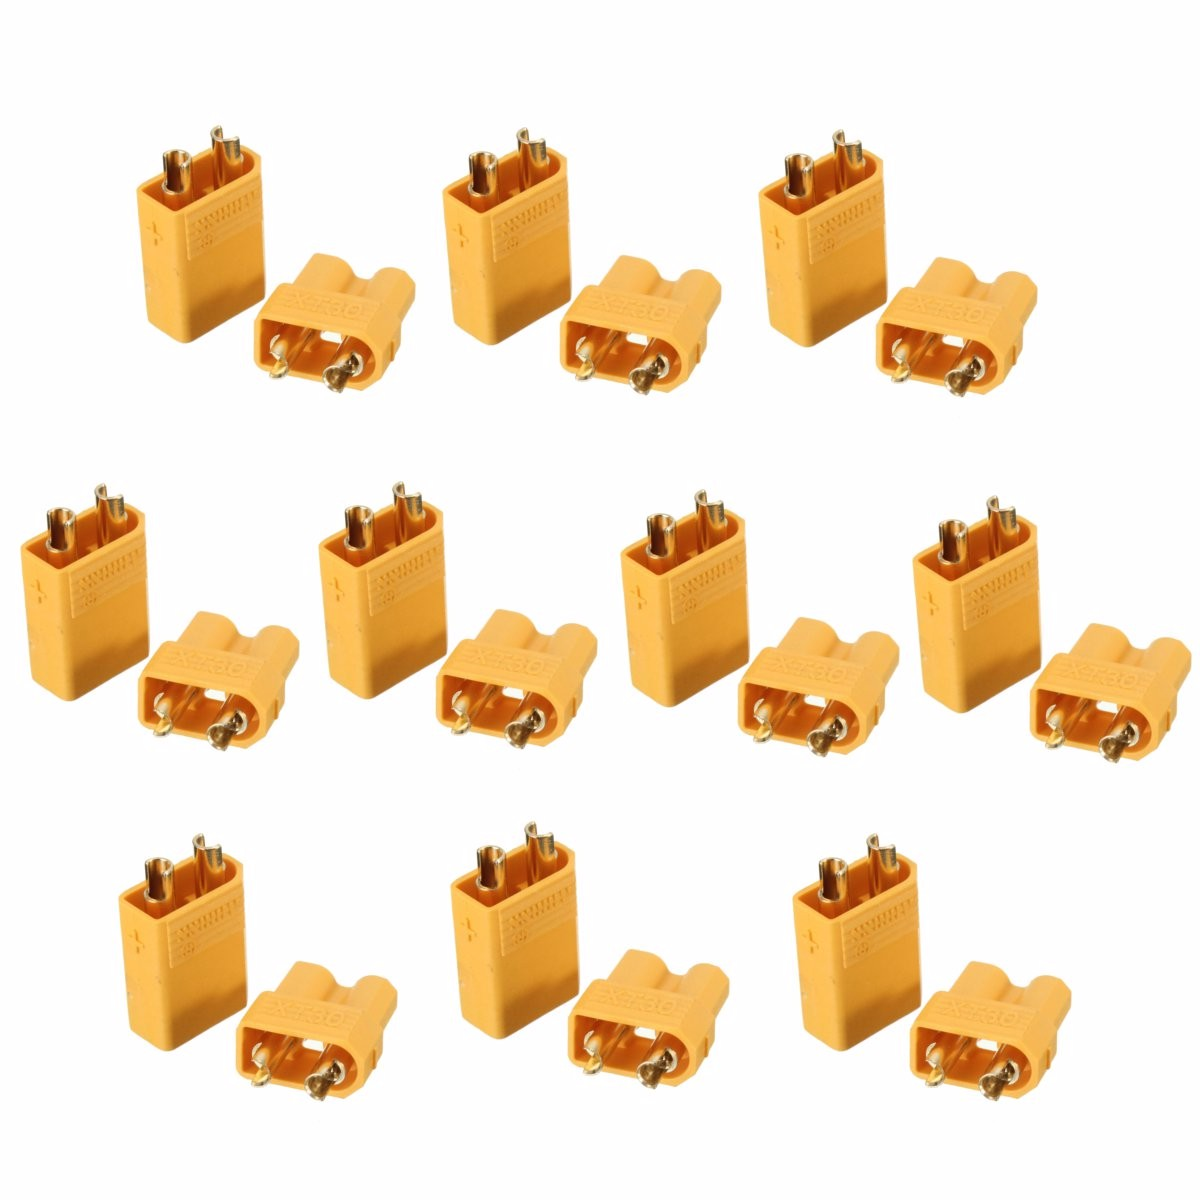 10Pcs XT60 XT30 T Plug  5 Male 5 Female Bullet Connectors Plug For RC Quadcopter FPV Racing Drone Lipo Battery Tinywhoop